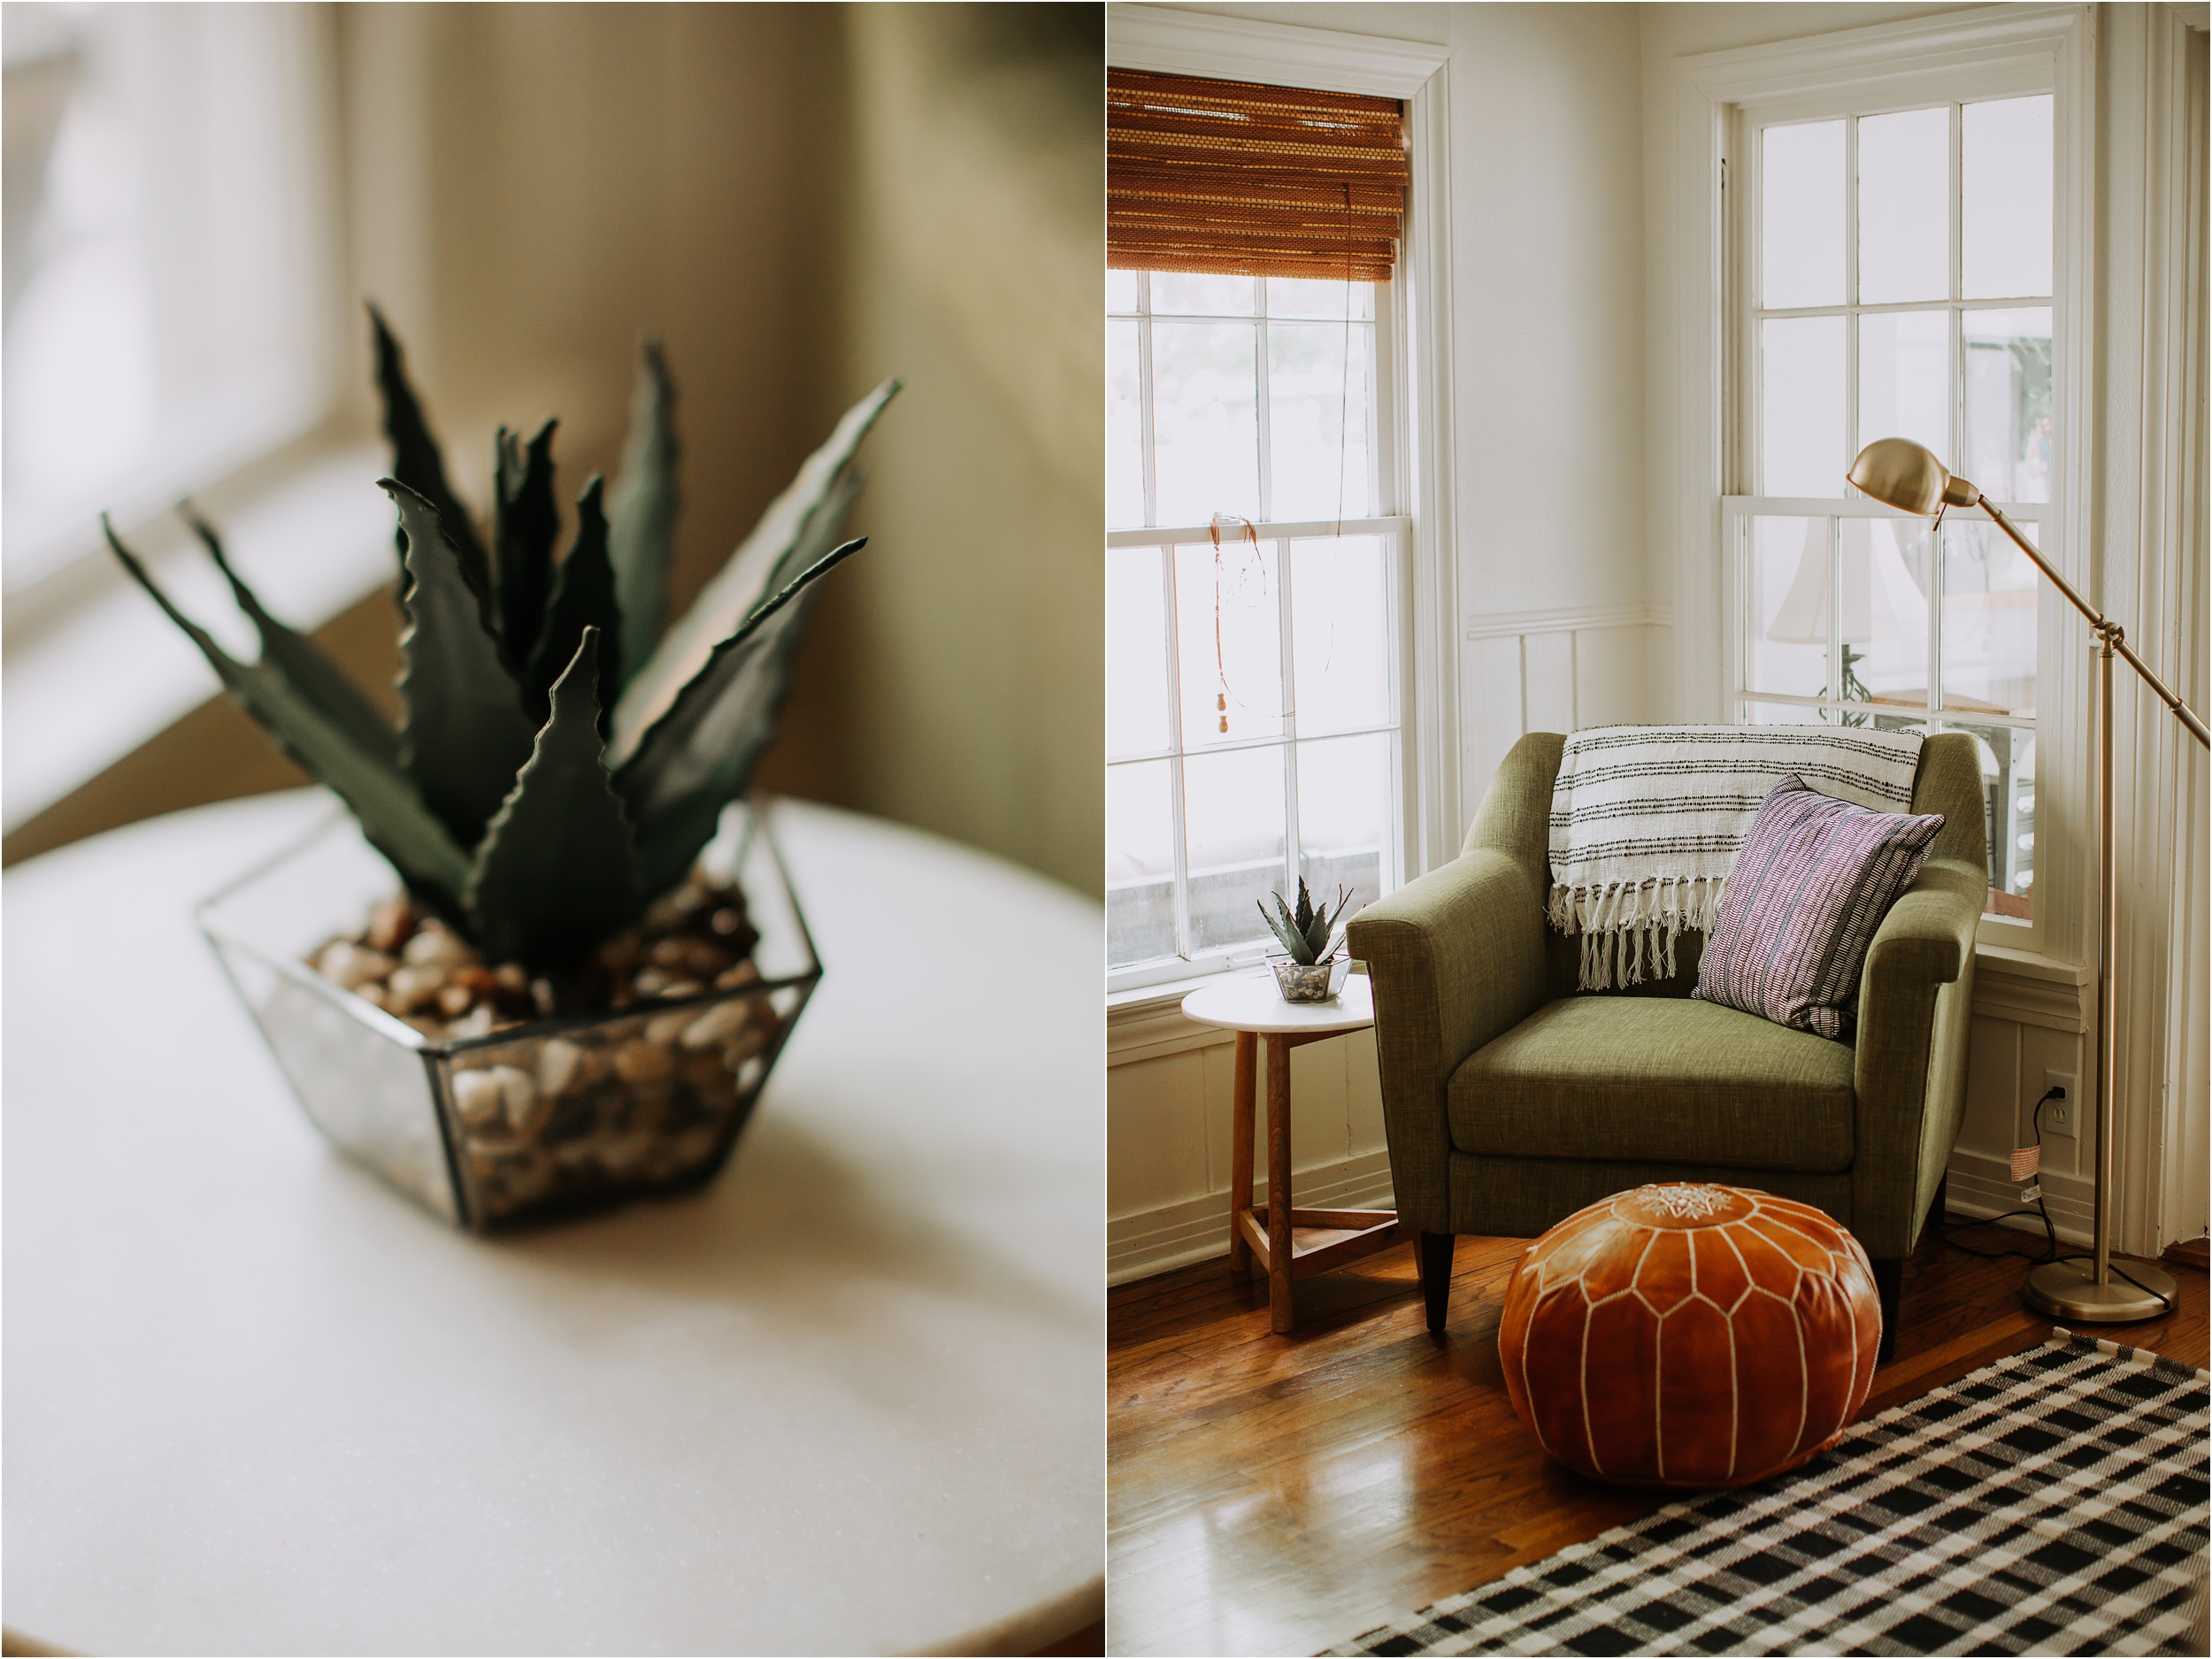 We found this chair on Wayfair and I absolutely love it! Its very comfy and it's a great size.